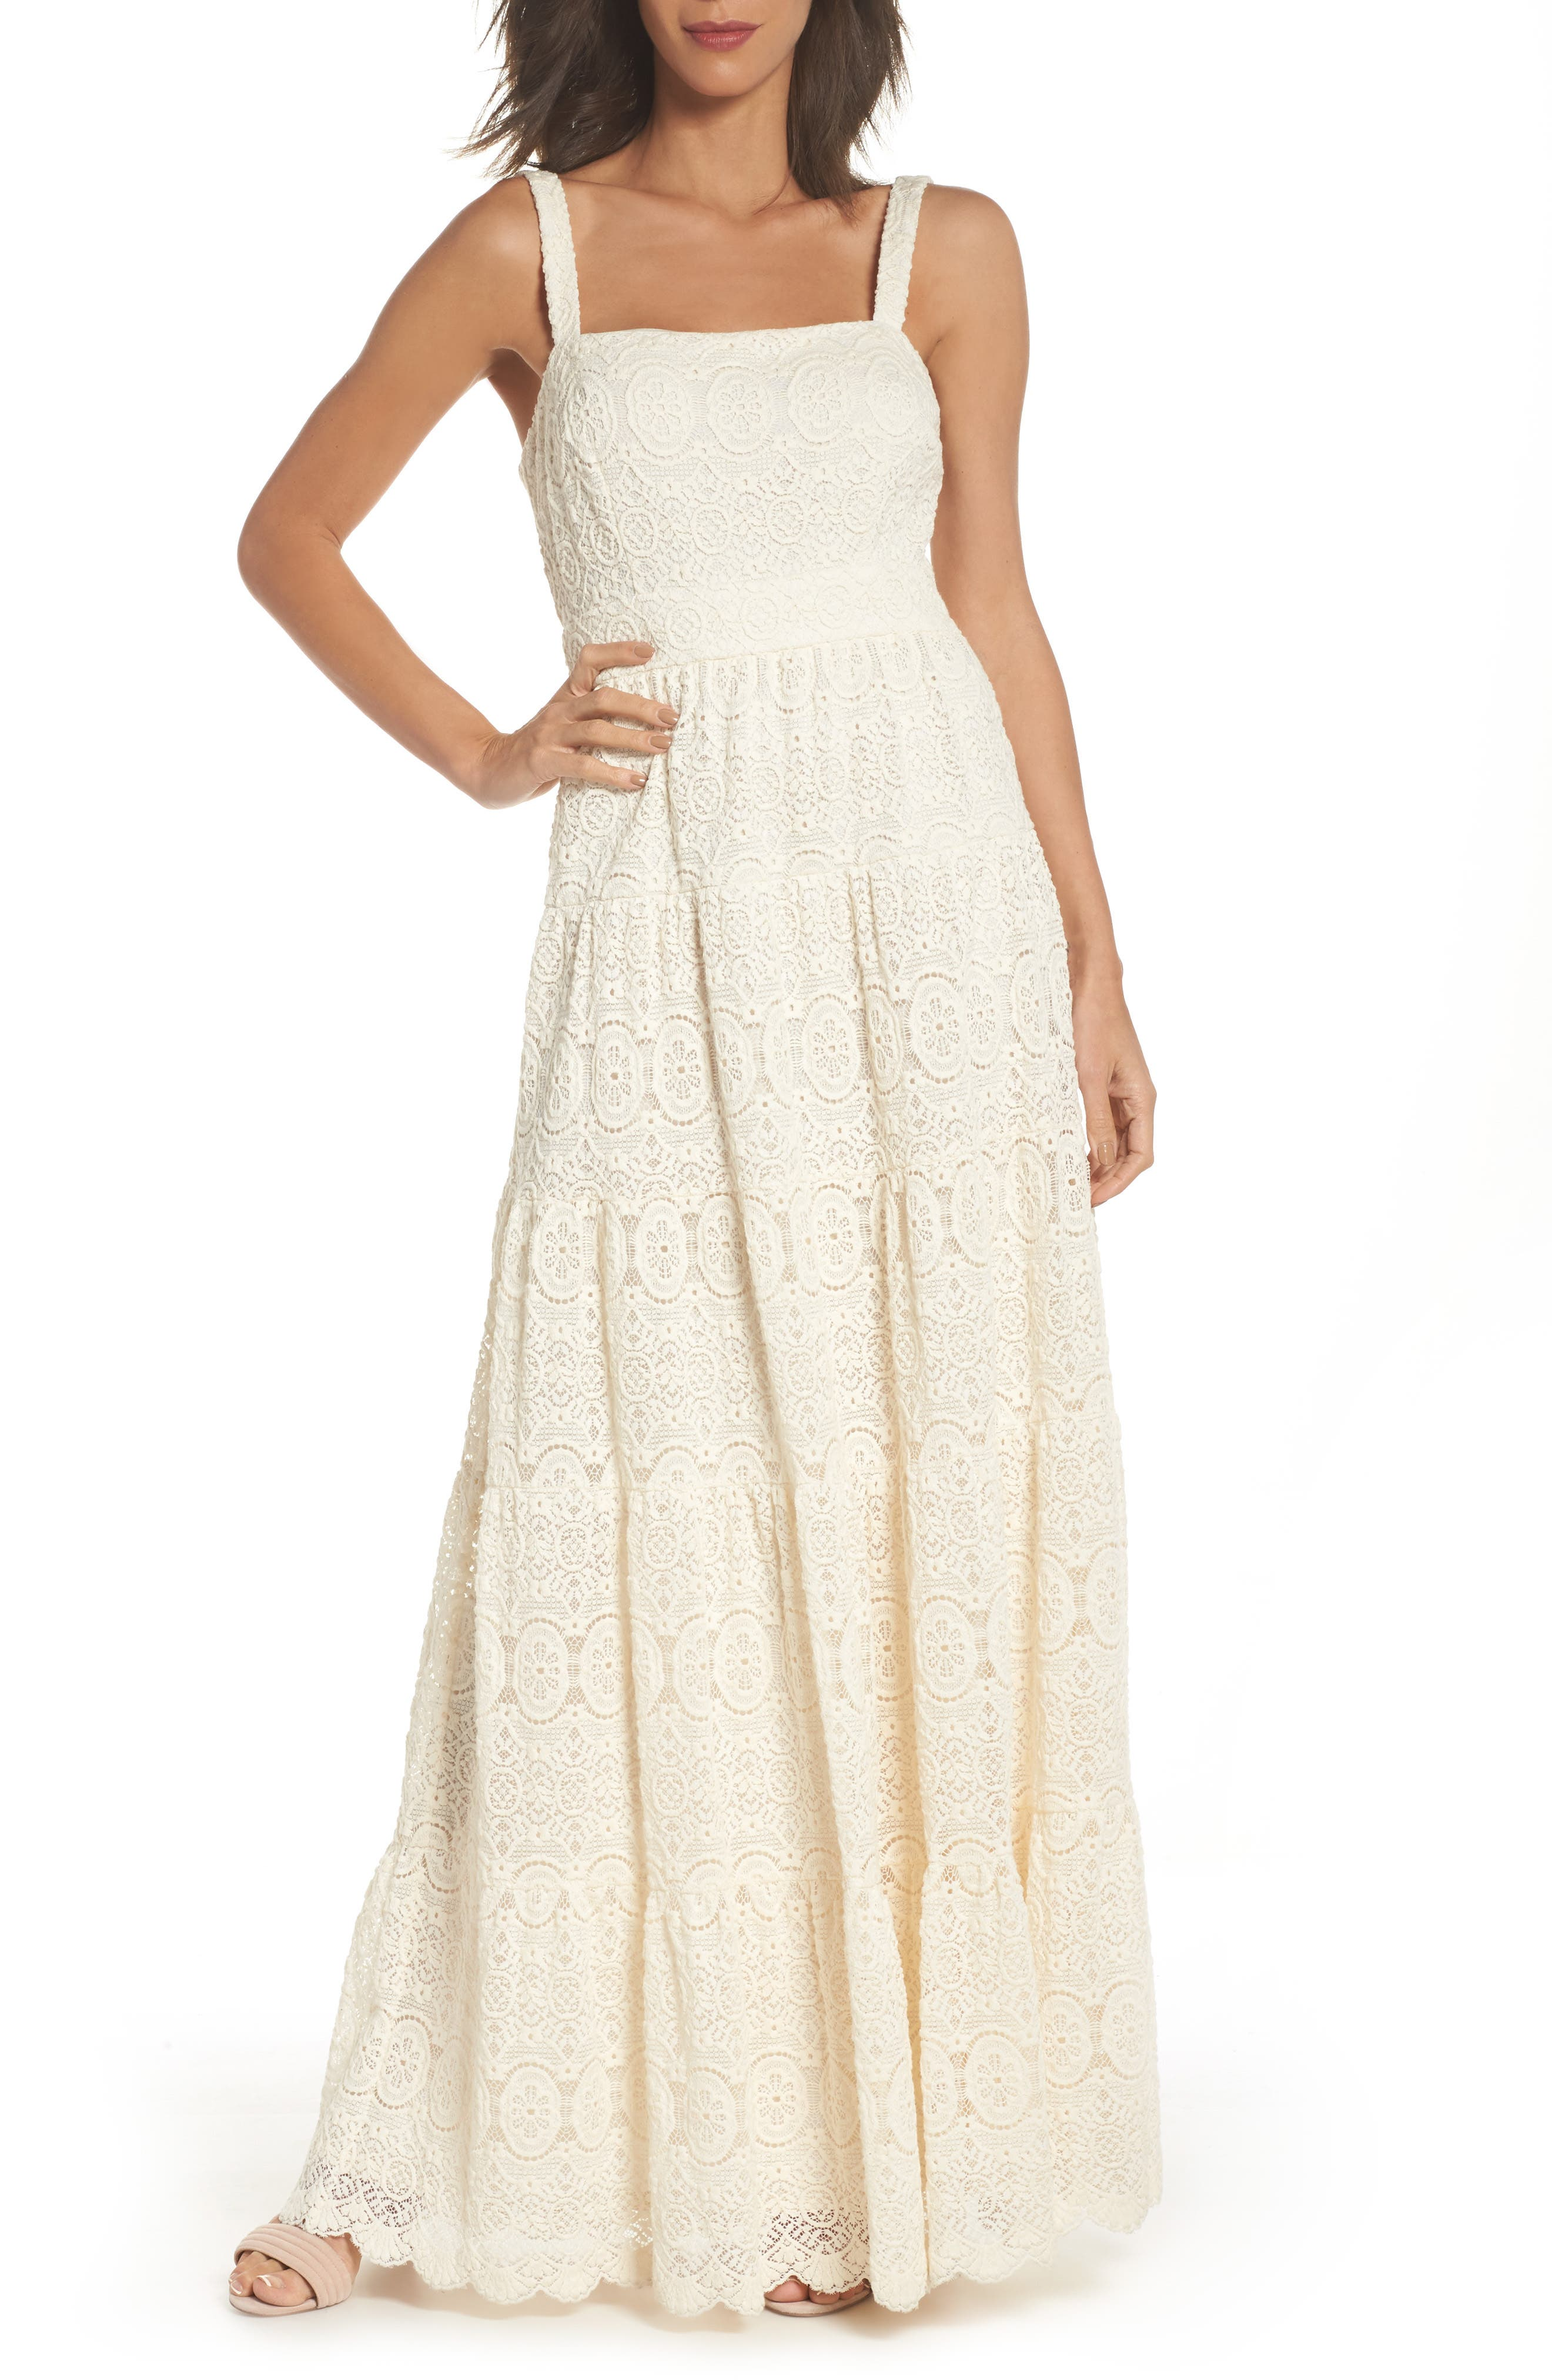 Tiered Lace Maxi Dress,                             Main thumbnail 1, color,                             Ivory